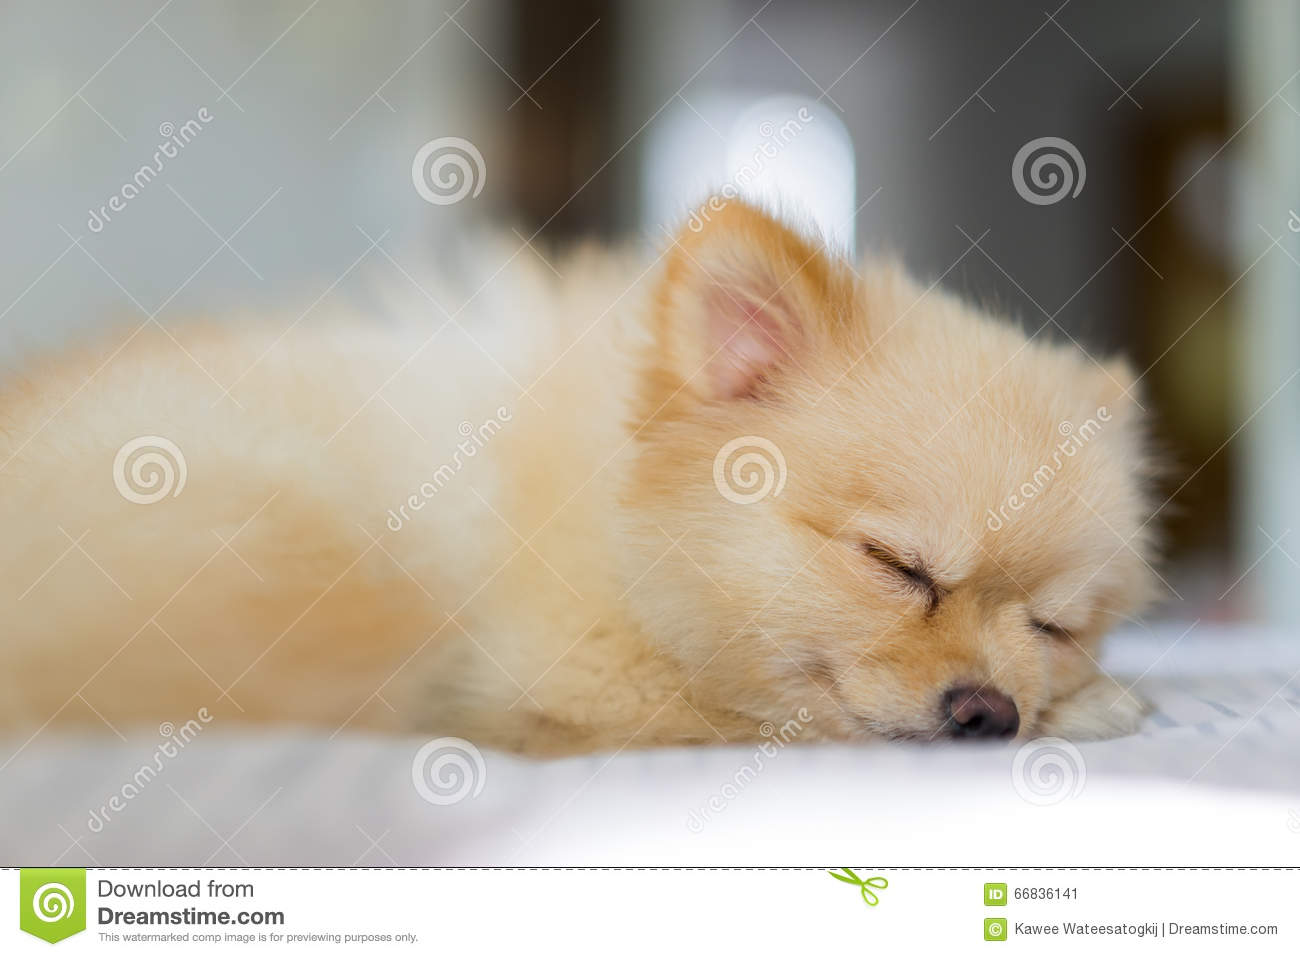 Pomeranian Dog In Hair Shed Period Sleeping On The Sofa Focus On